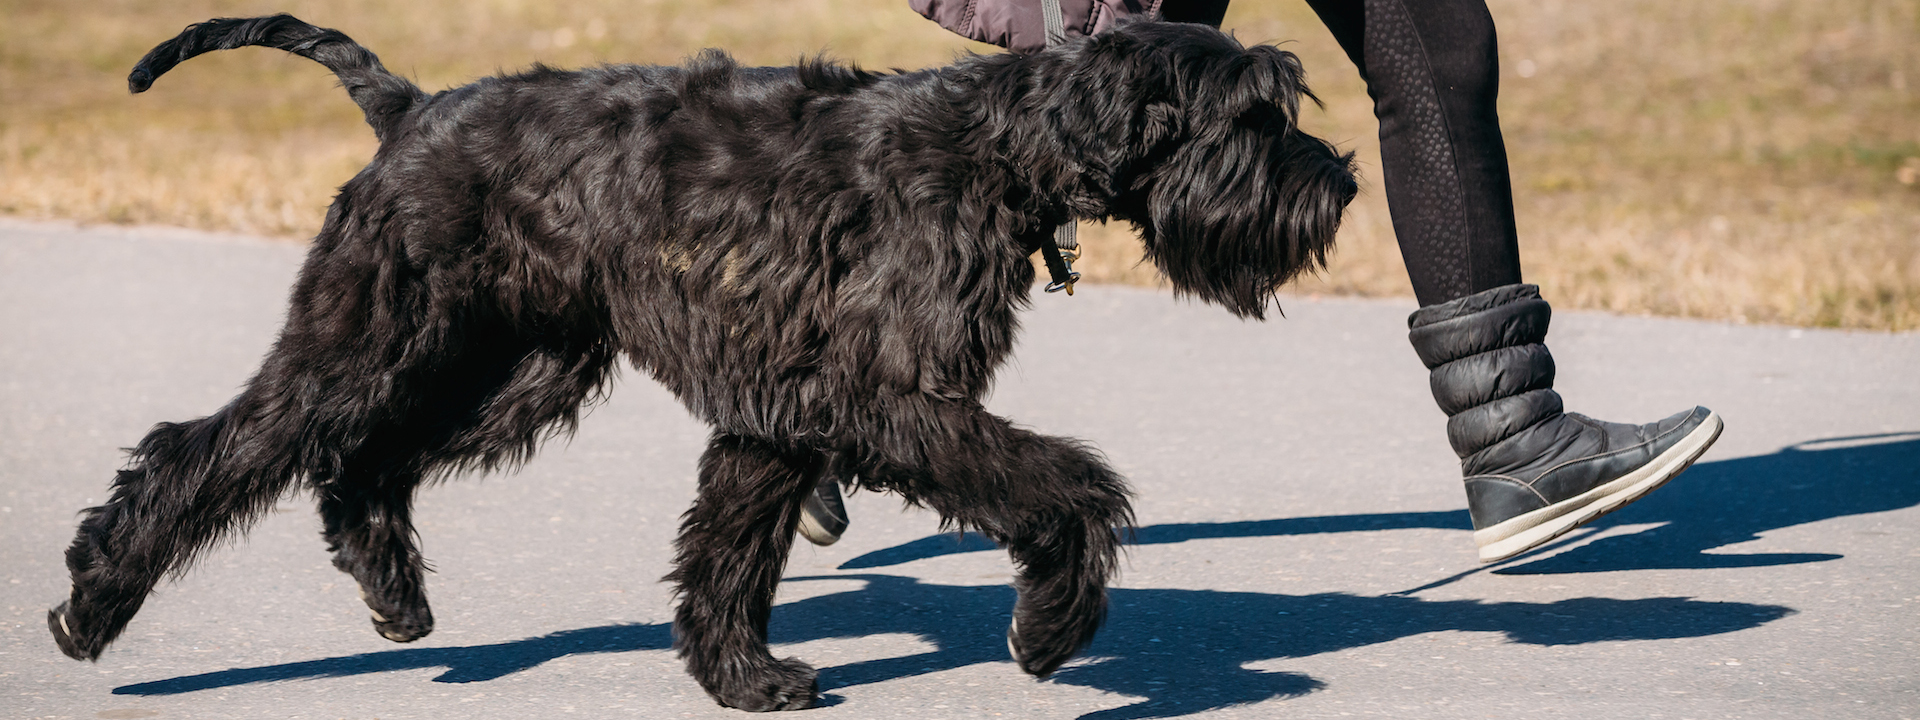 stadttraining-mit-hund-city-walk-workshop-hundezentrum-wien